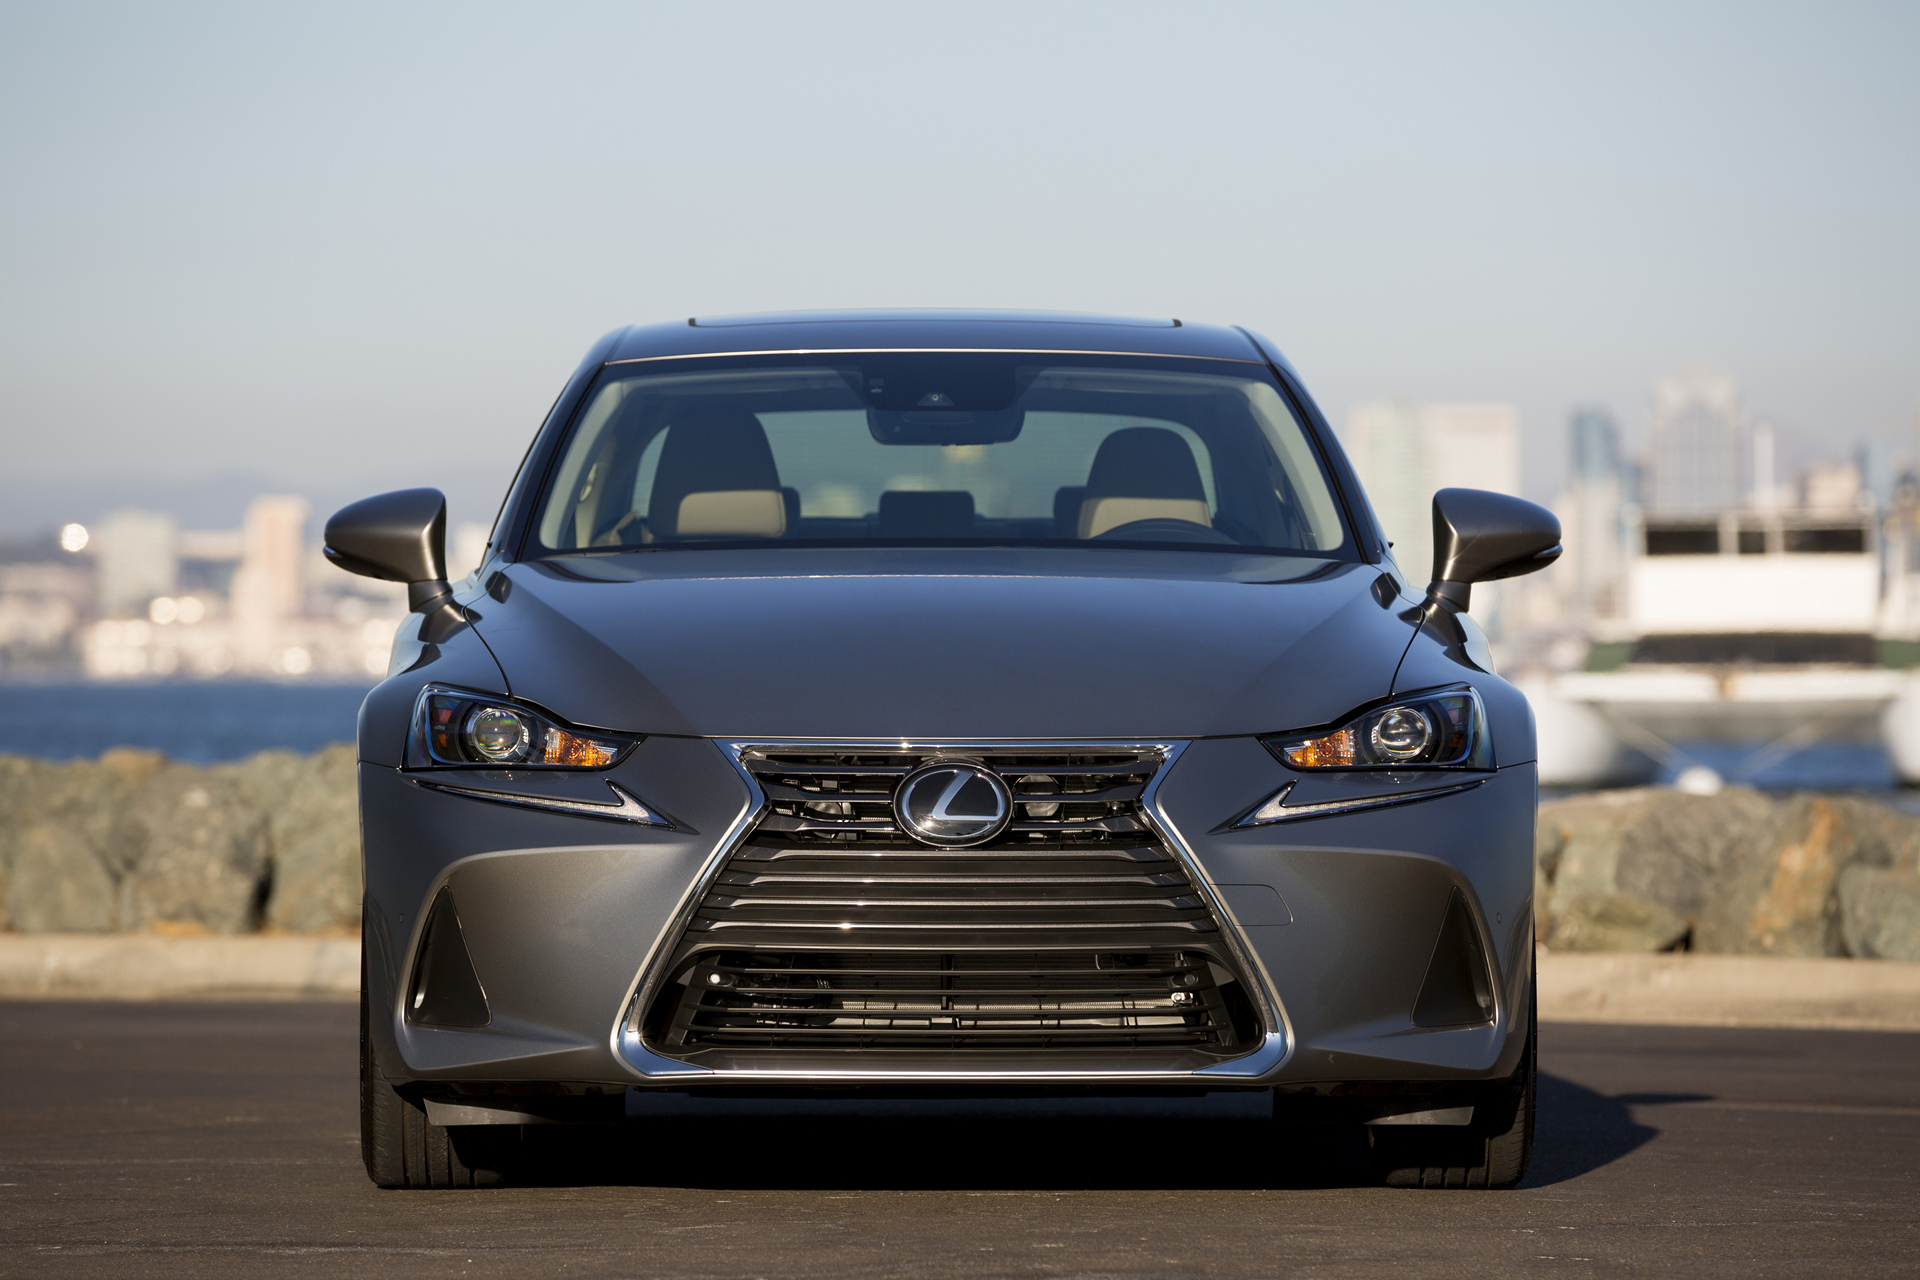 2017 Lexus IS 200t © Toyota Motor Corporation